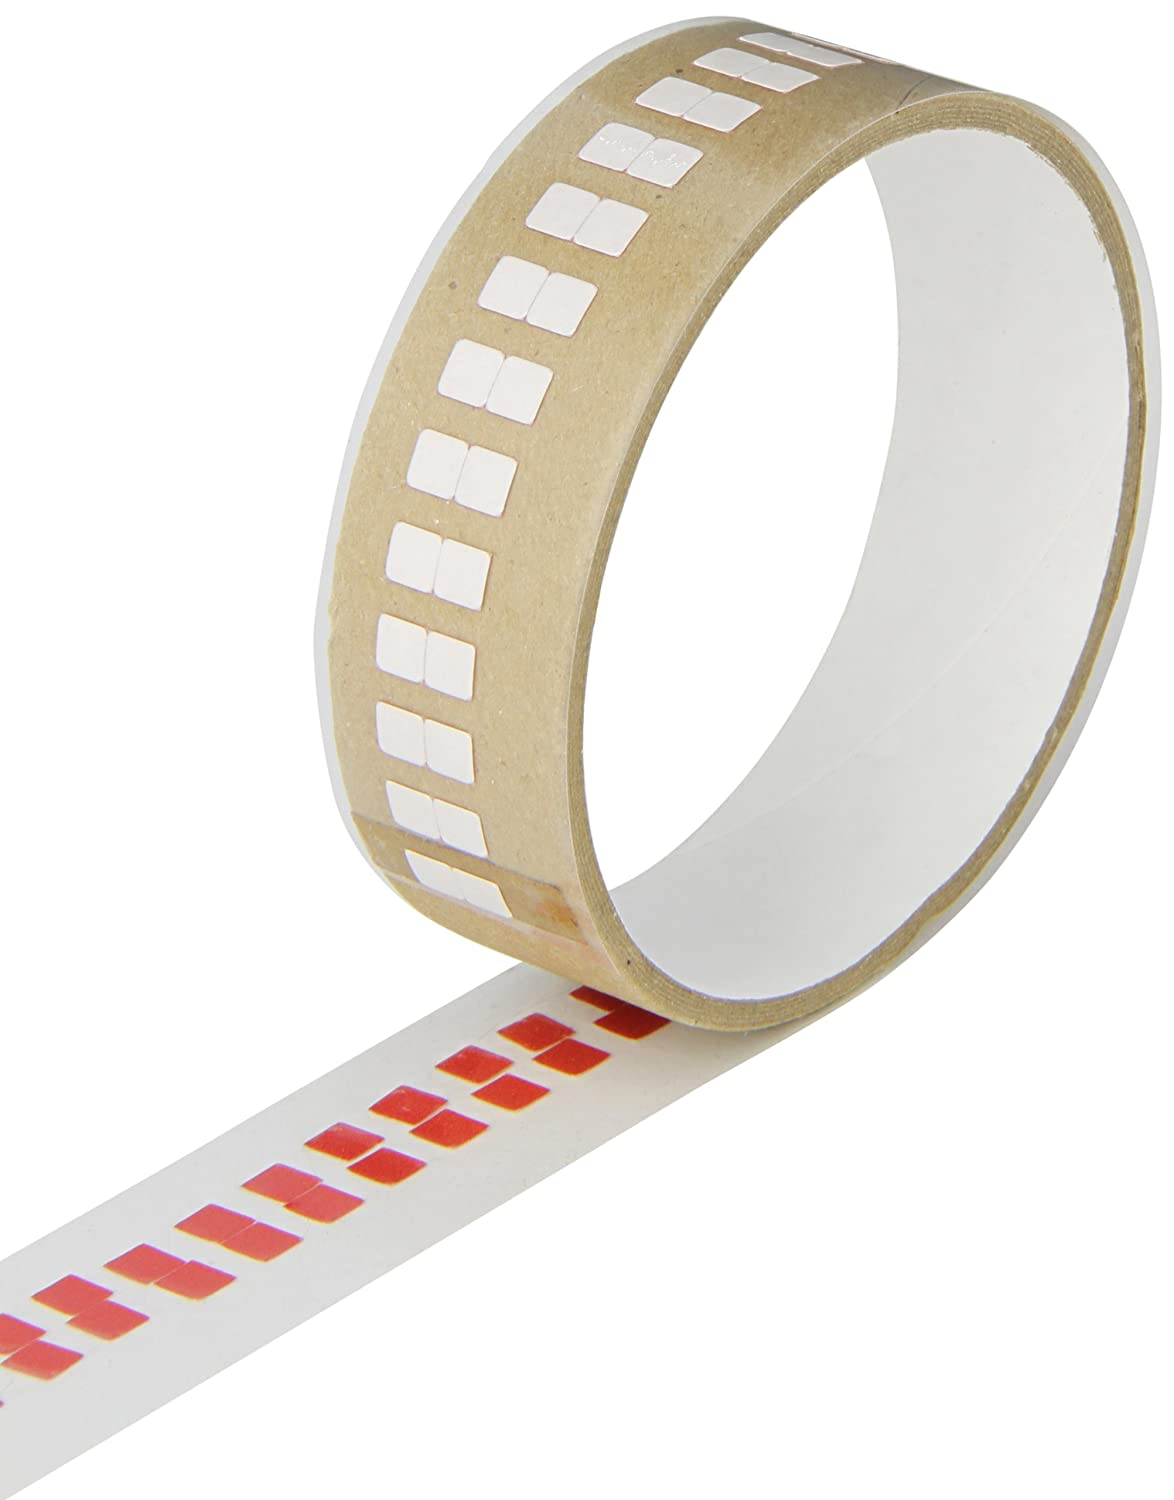 TapeCase 3M 5558 0.25 x 36yd White Polyester/Paper/Acrylic Adhesive Ultra Thin Water Contact Indicator Tape, 0.006 Thickness, 36 yd Length, 0.25 Width